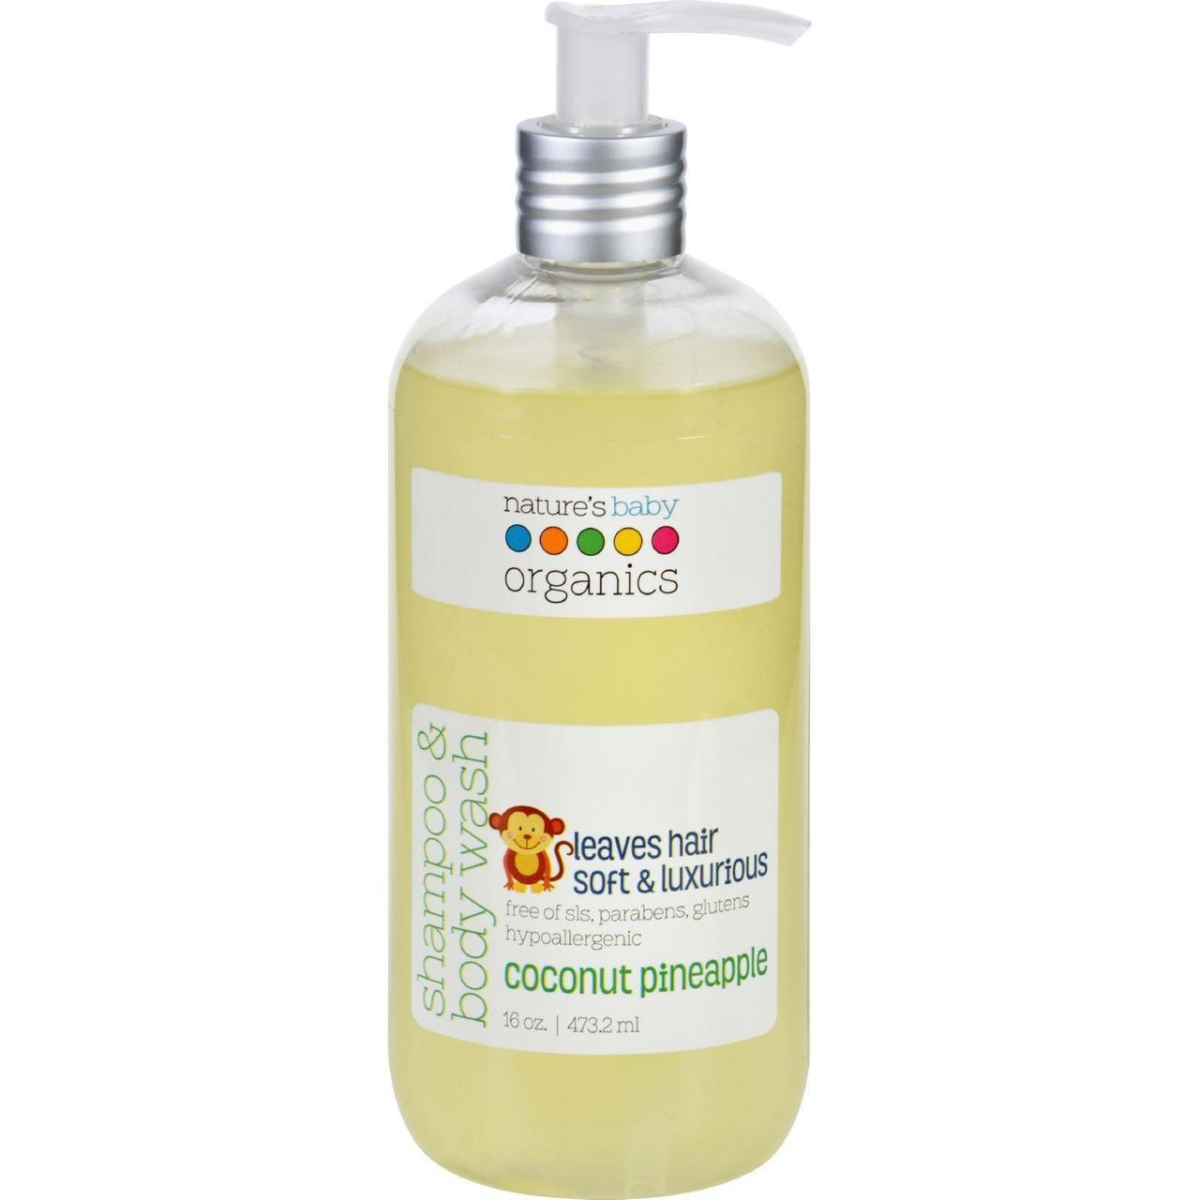 Natures Baby Organics ECW1624360 16 oz Shampoo & Body Wash Coconut Pienapple